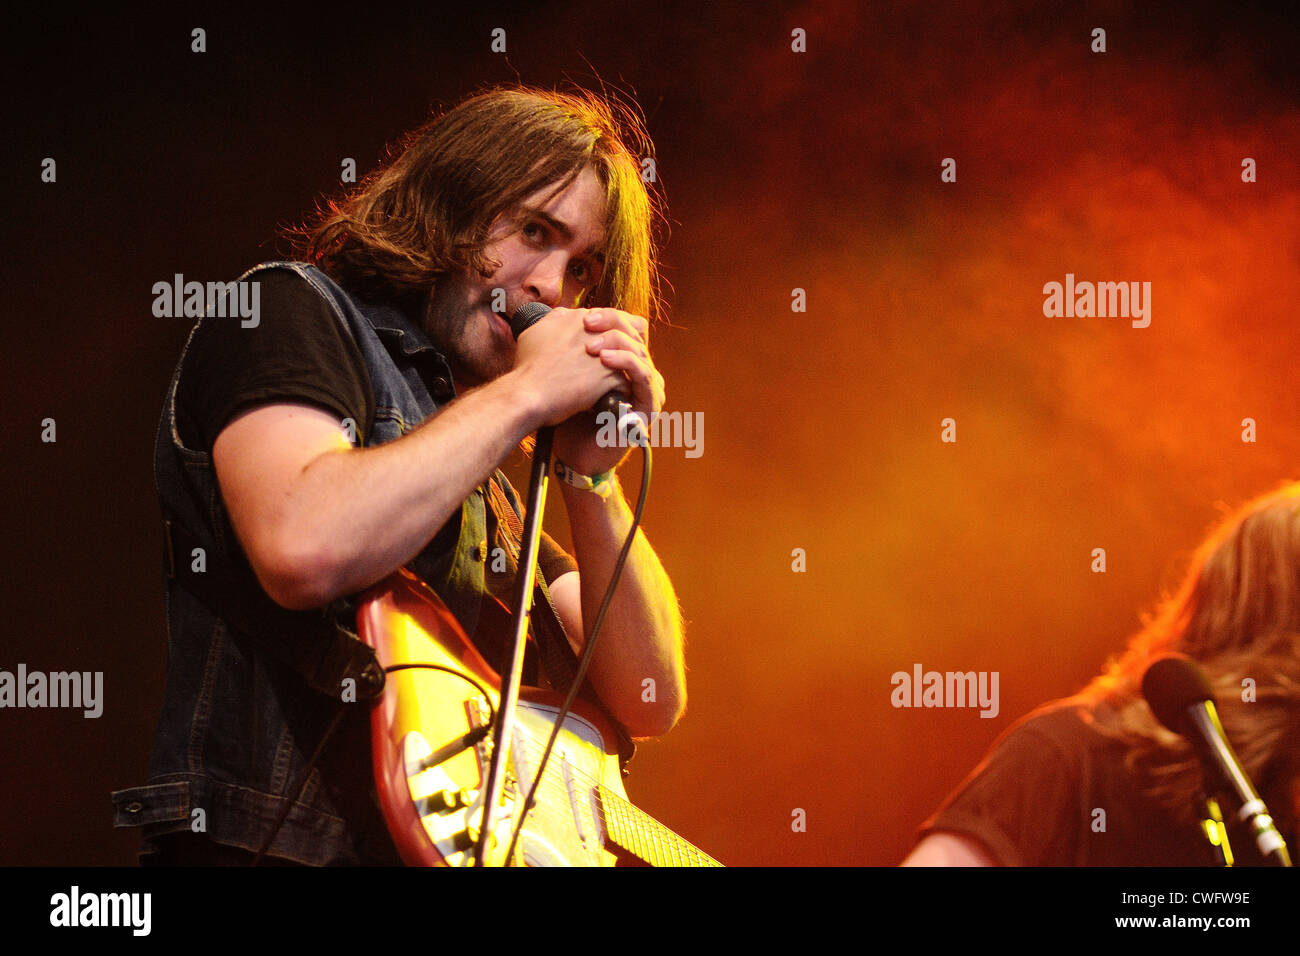 BENICASSIM, SPAIN - JULY 15: The Vaccines performs at FIB on July 14, 2012 in Benicassim, Spain. - Stock Image